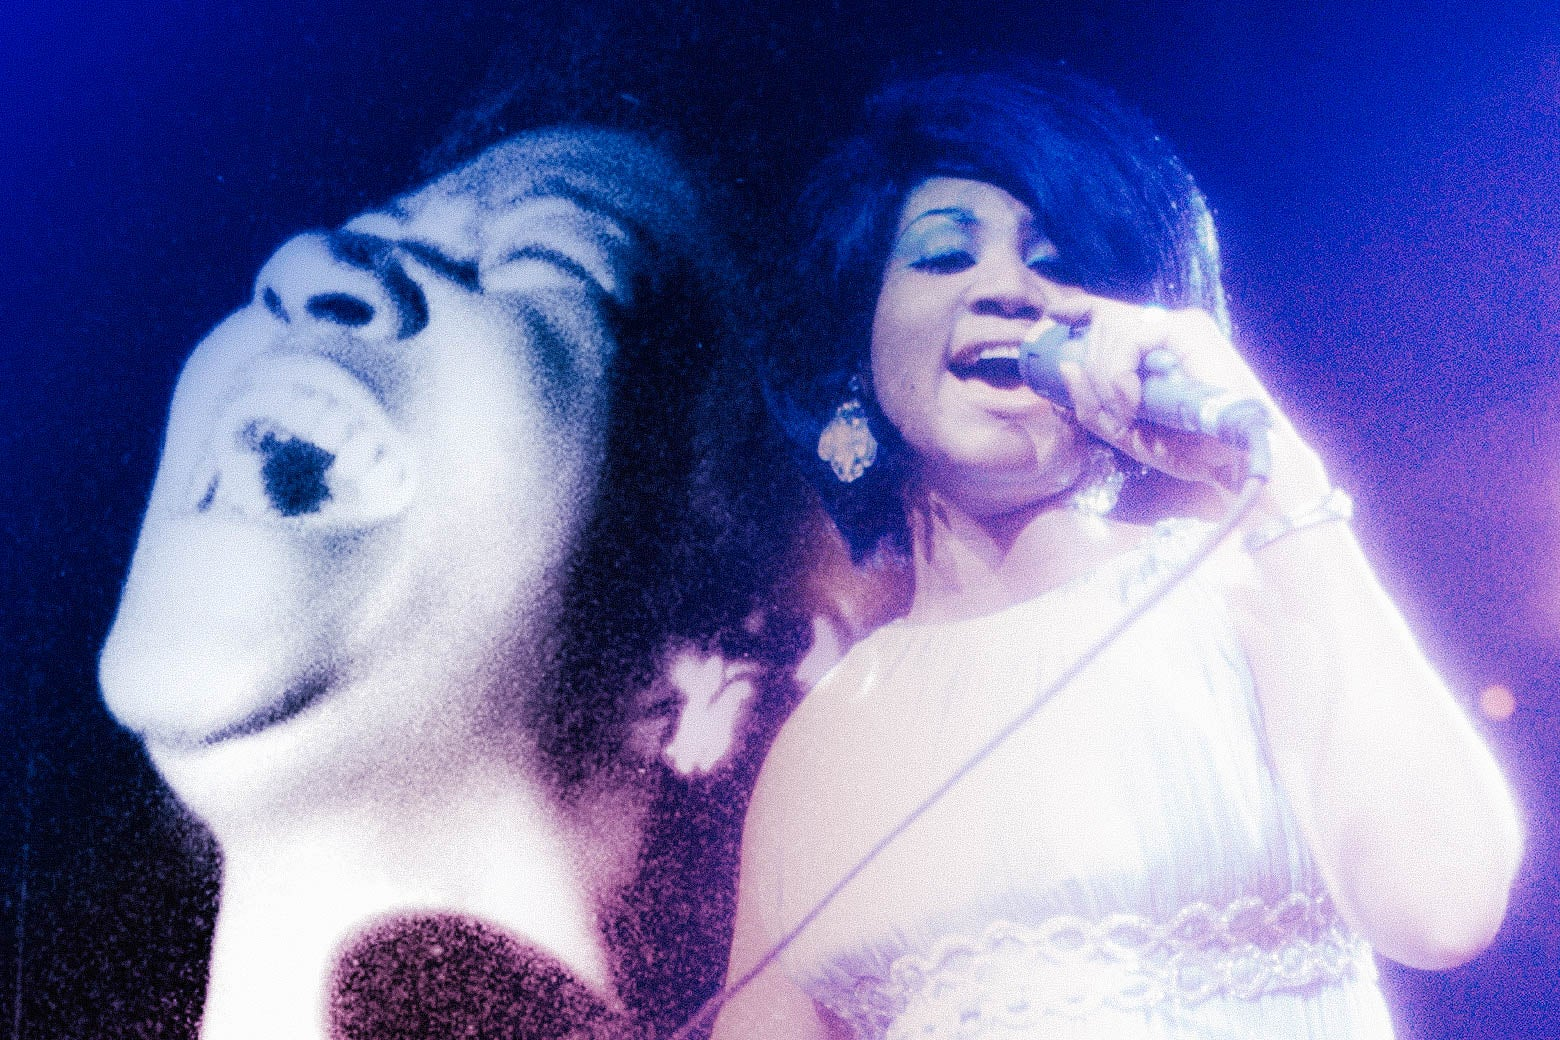 Collage of two photos of Aretha Franklin.